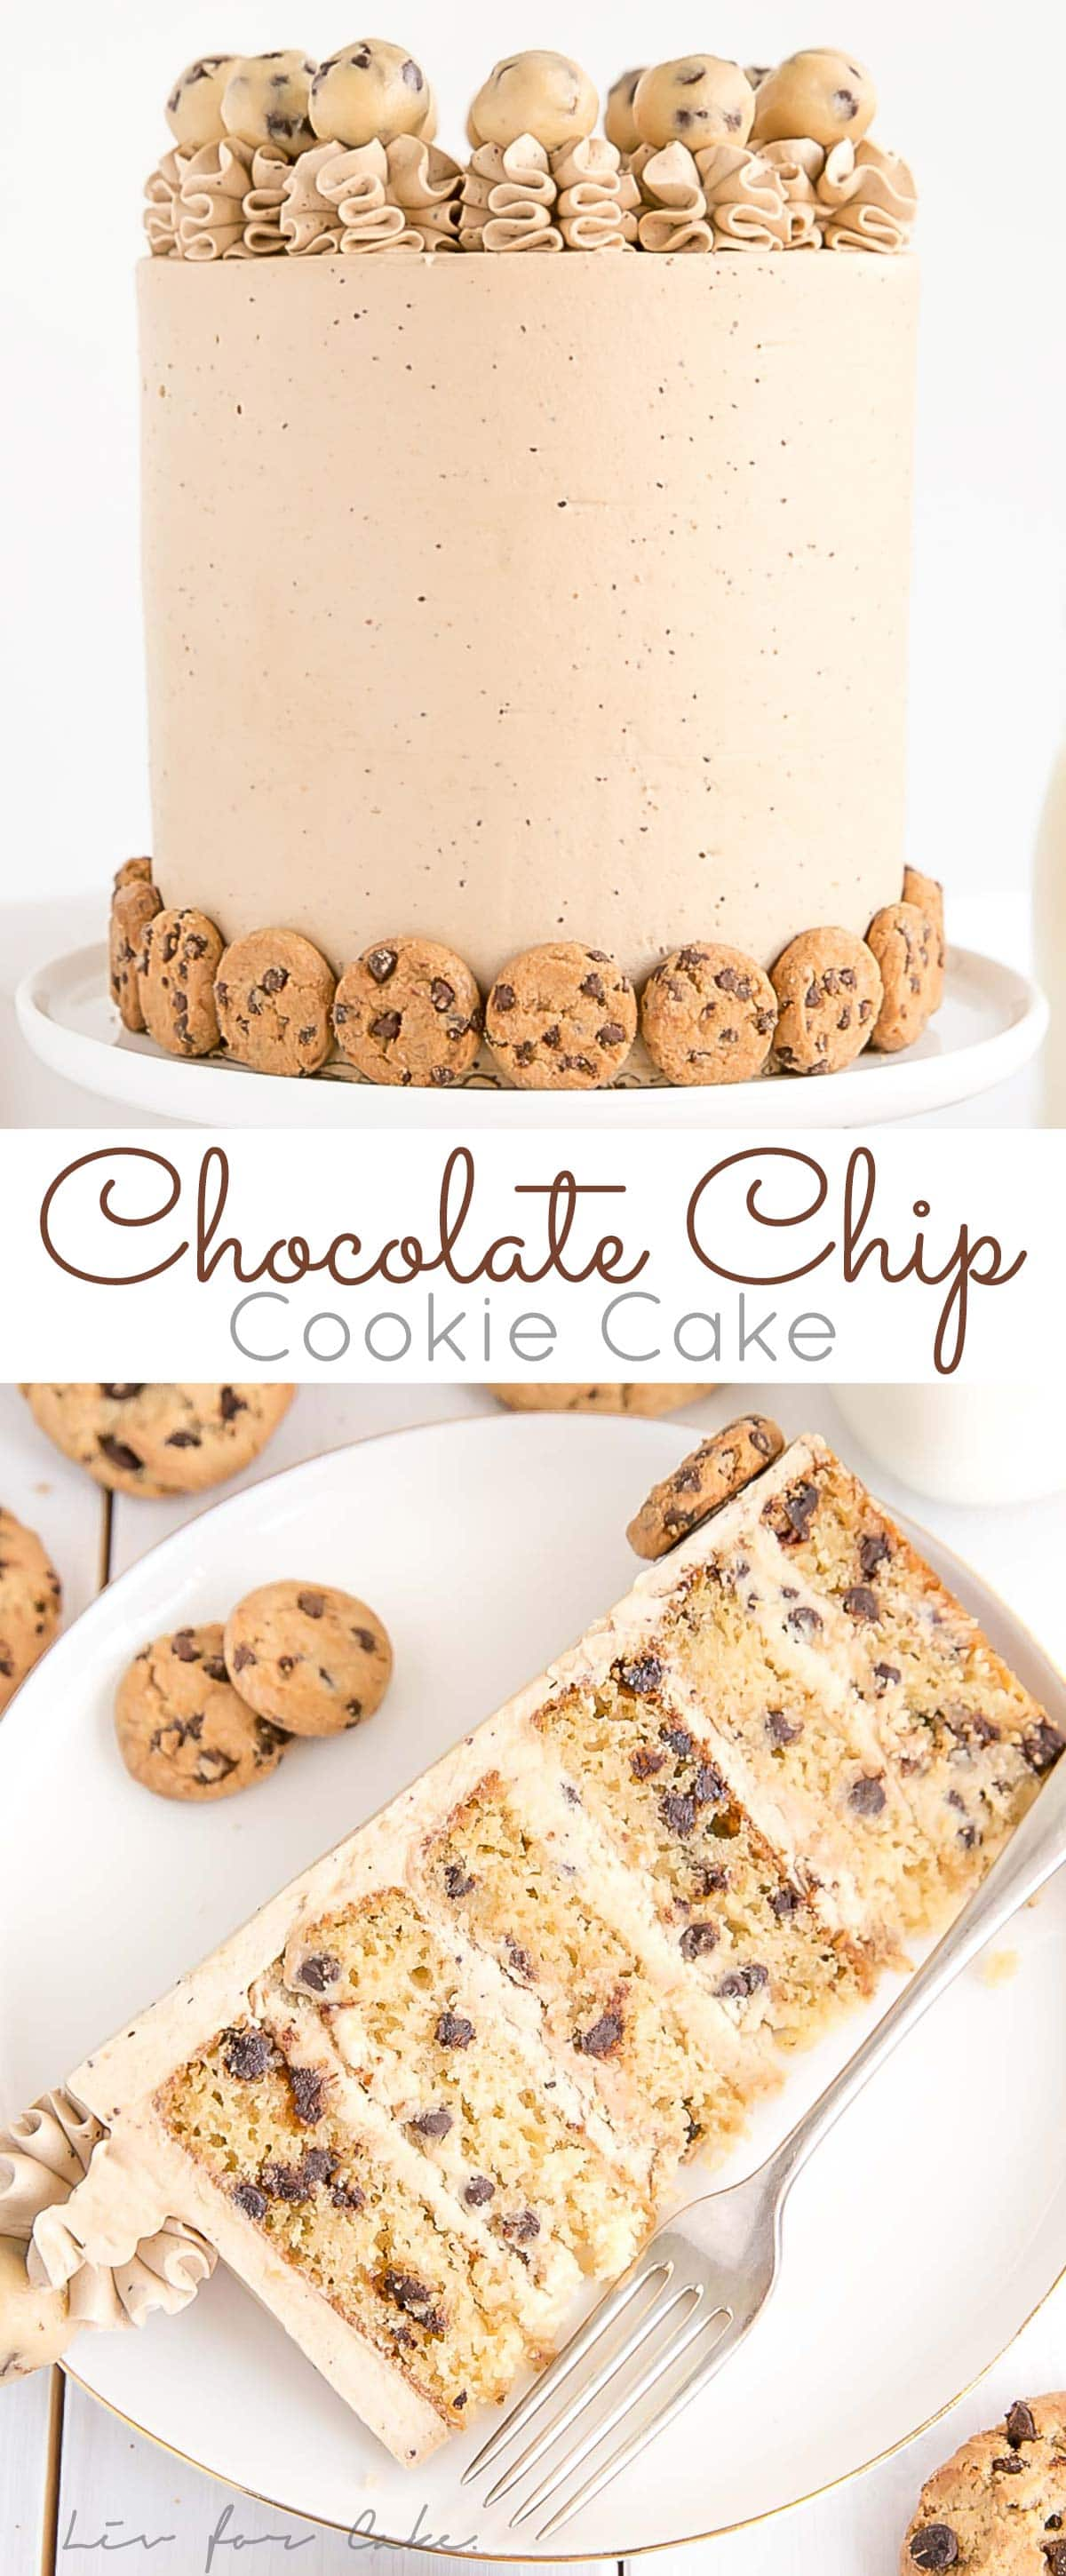 This Chocolate Chip Cookie Cake has brown sugar chocolate chip cake layers, a cookie dough filling, and a chocolate chip cookie frosting!